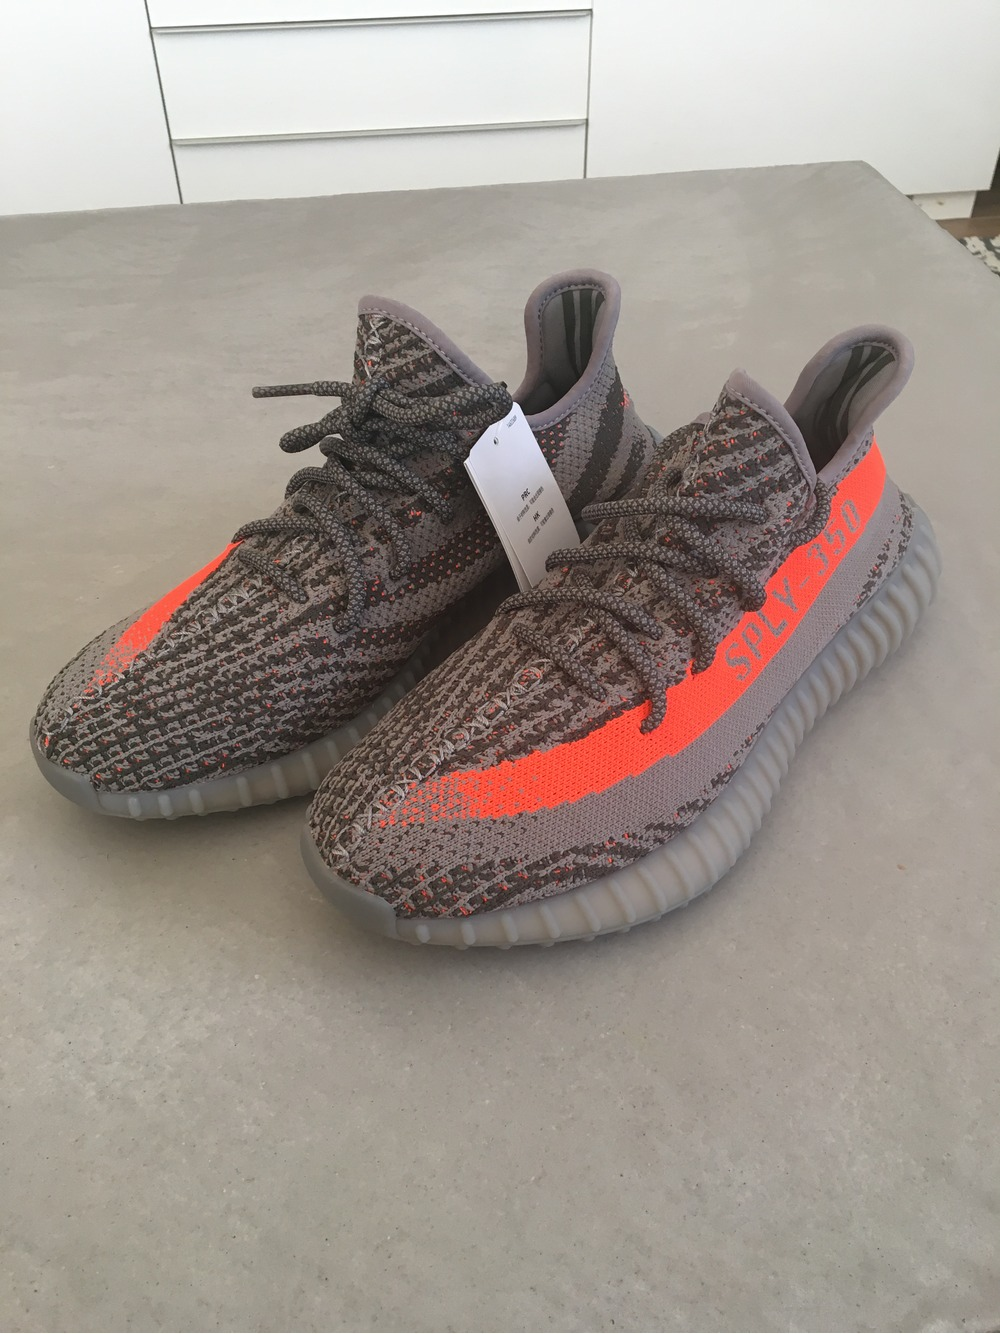 ADIDAS YEEZY BOOST 350 v2 Black / Red BY9612 (# 984384) from